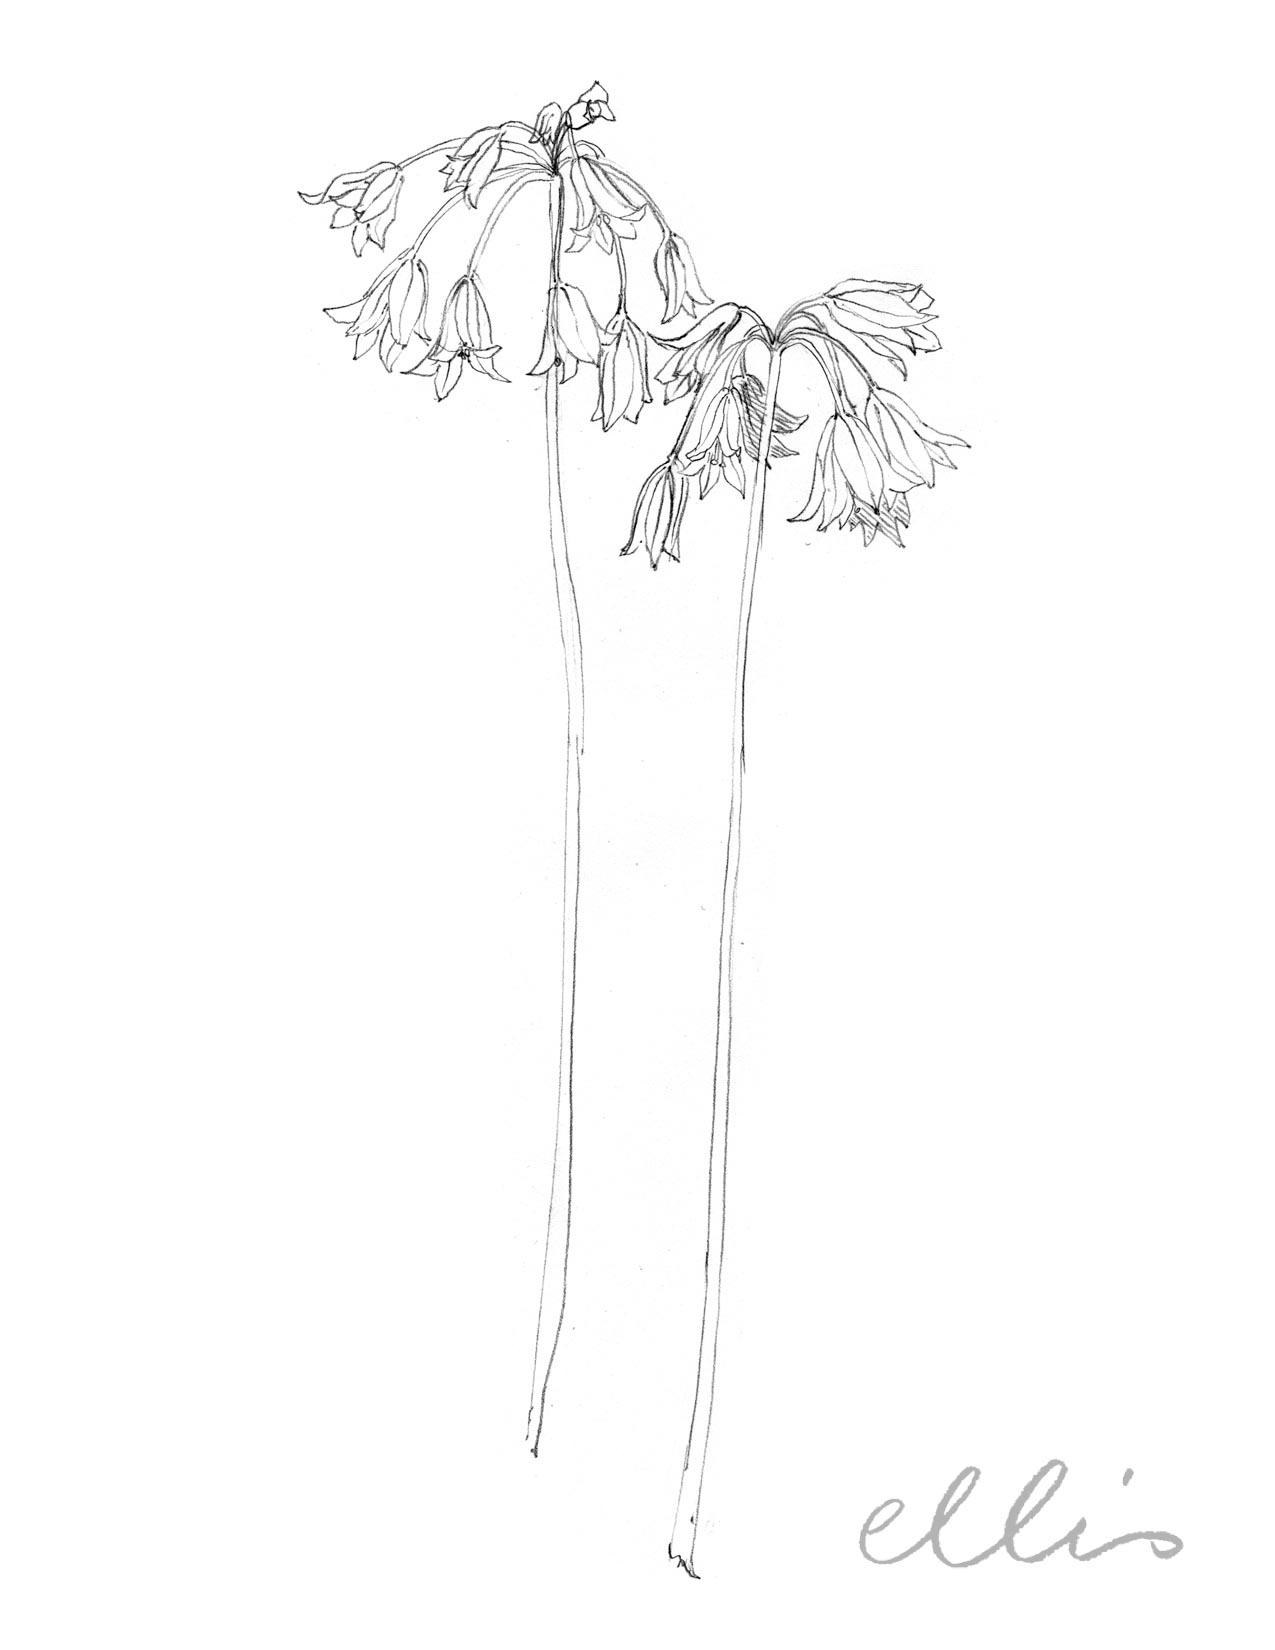 Erin Ellis_100 days project botanical drawings_2013-79.jpg